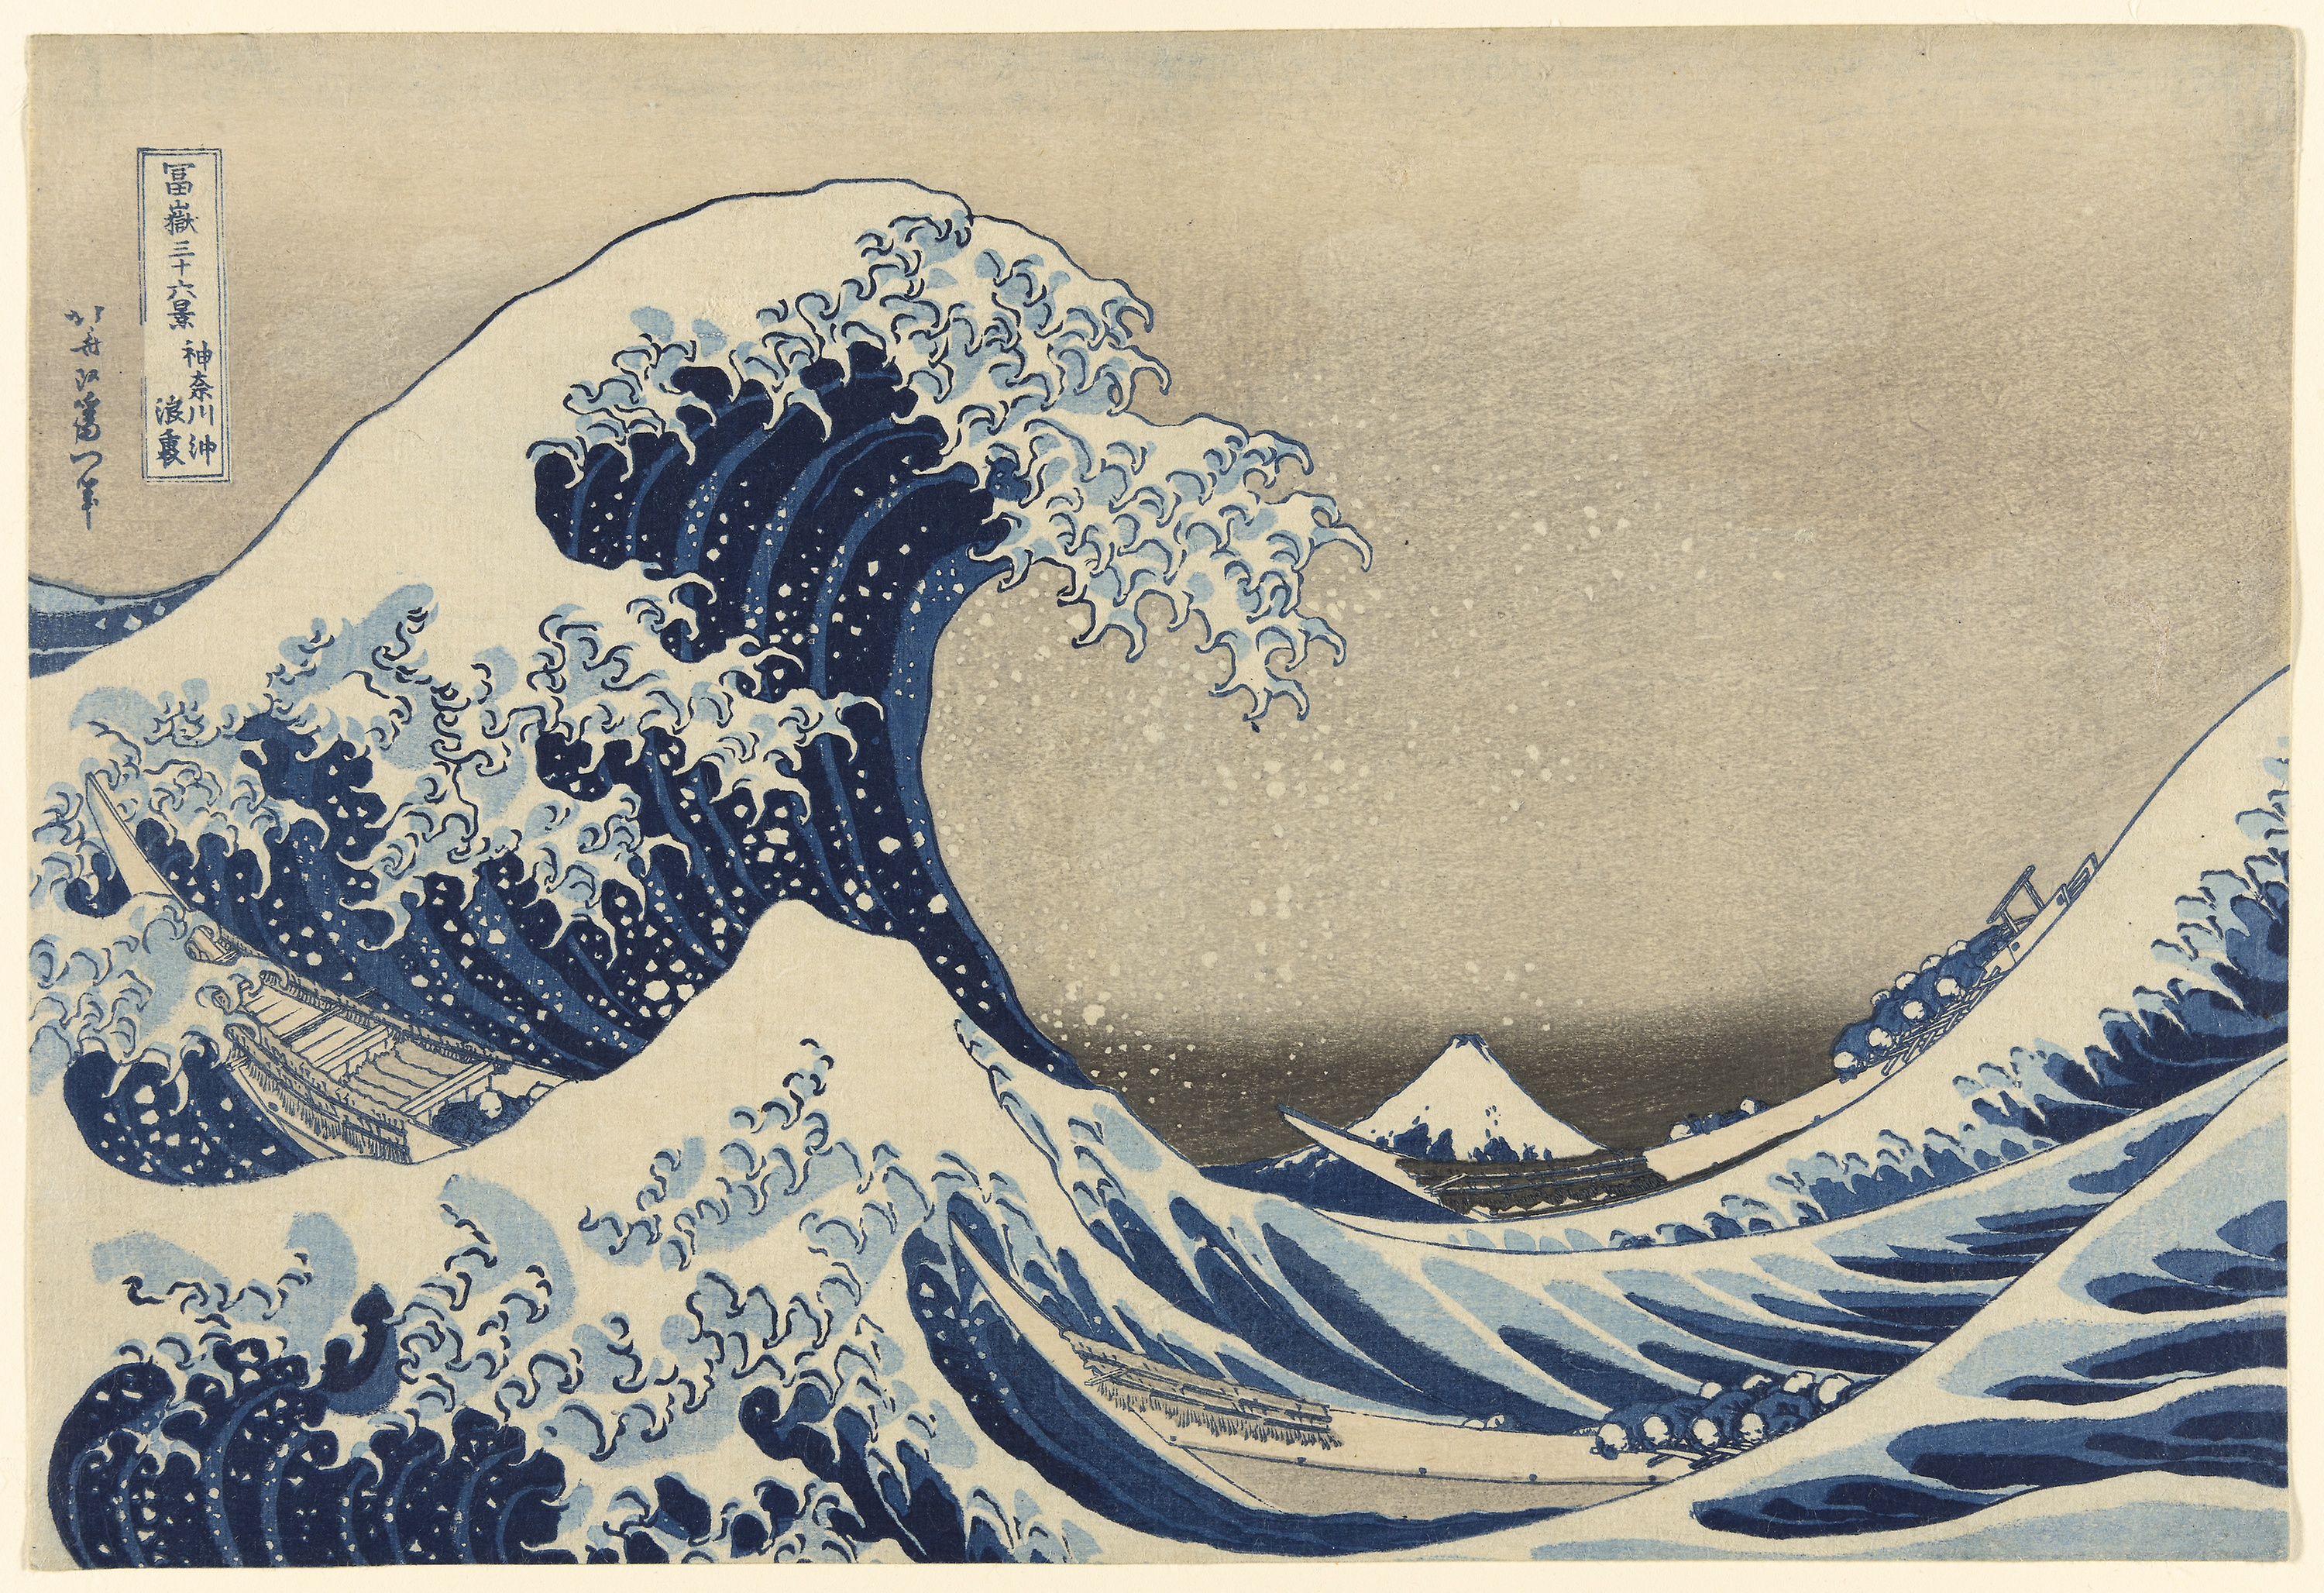 Japanese illustration The Wave